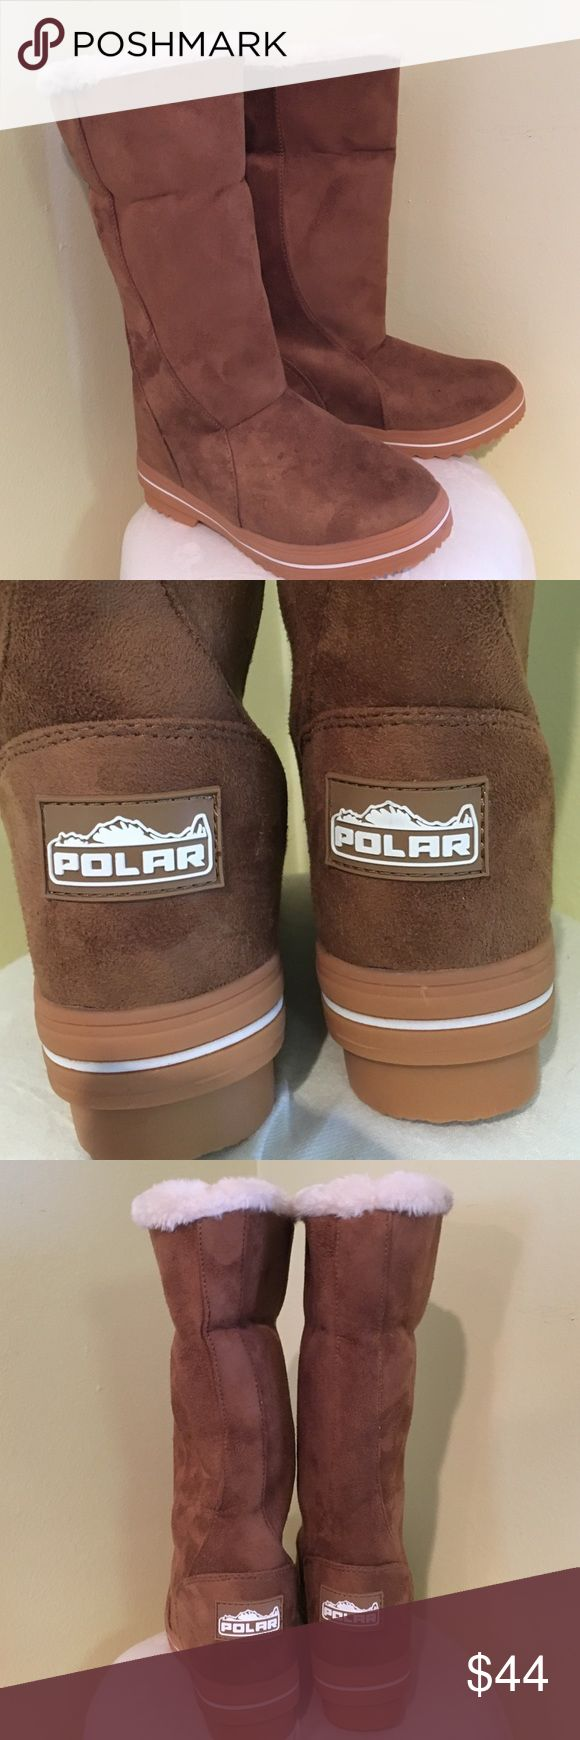 Polar Slip On Boots with faux fur lining 8, 9 New! Made by Polar women's slip on boots with faux fur lining fits true to size. Size 8 and nine available new without box Polar Shoes Winter & Rain Boots